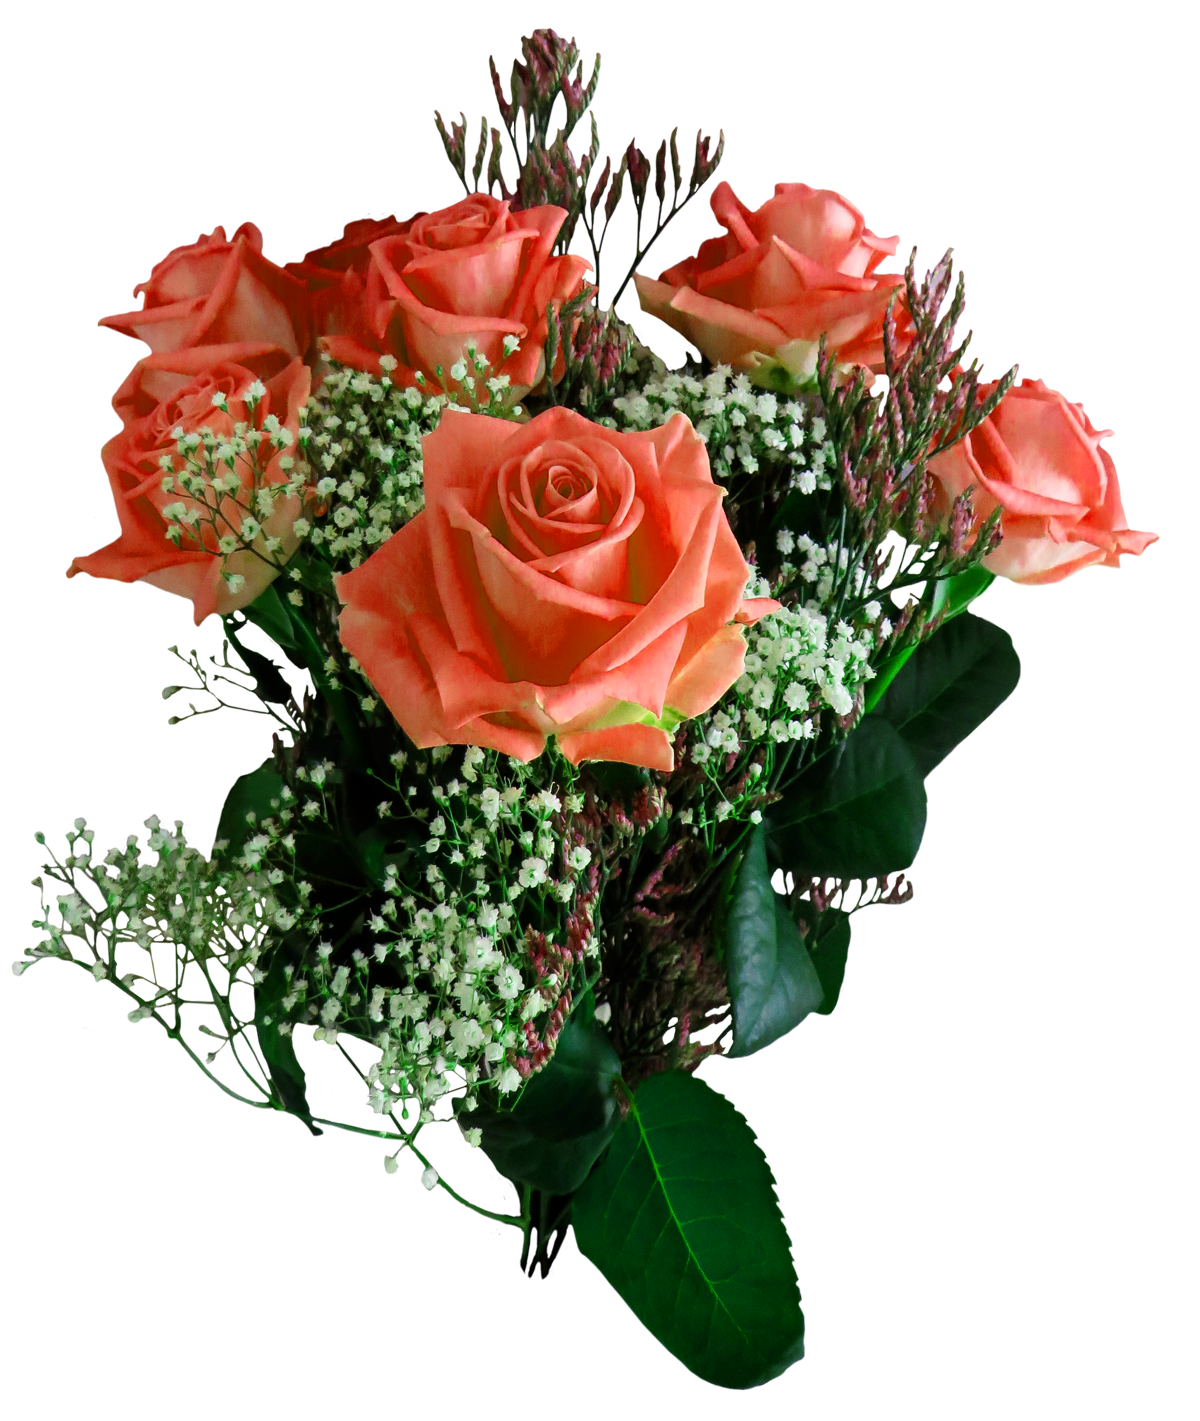 Flower Bouquet PNG Transparent Image - PngPix